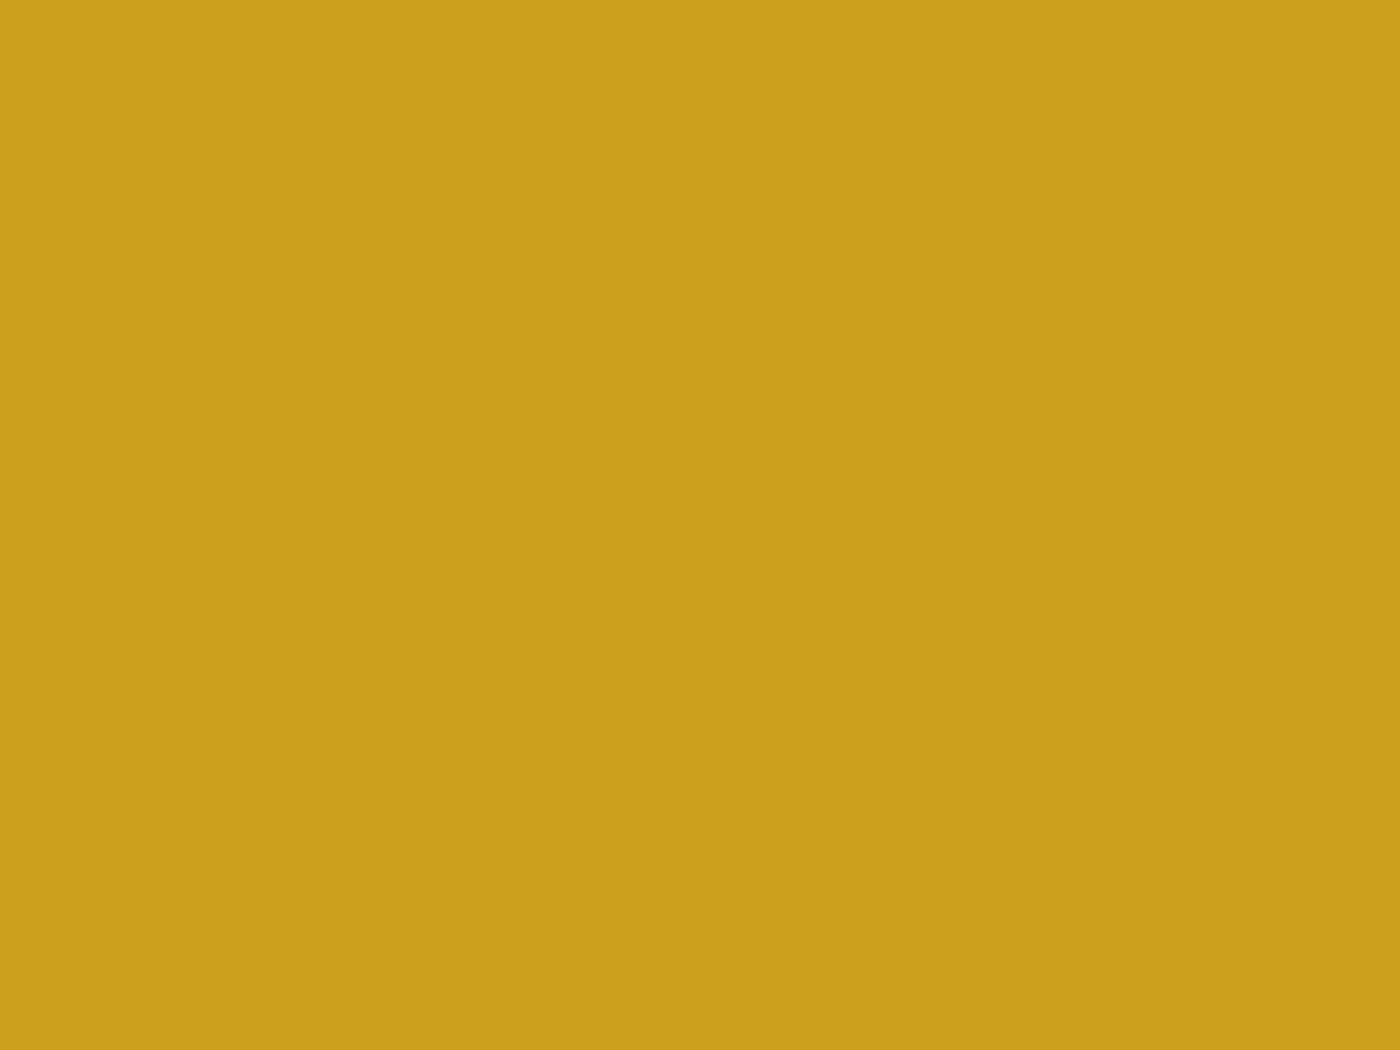 1400x1050 Lemon Curry Solid Color Background